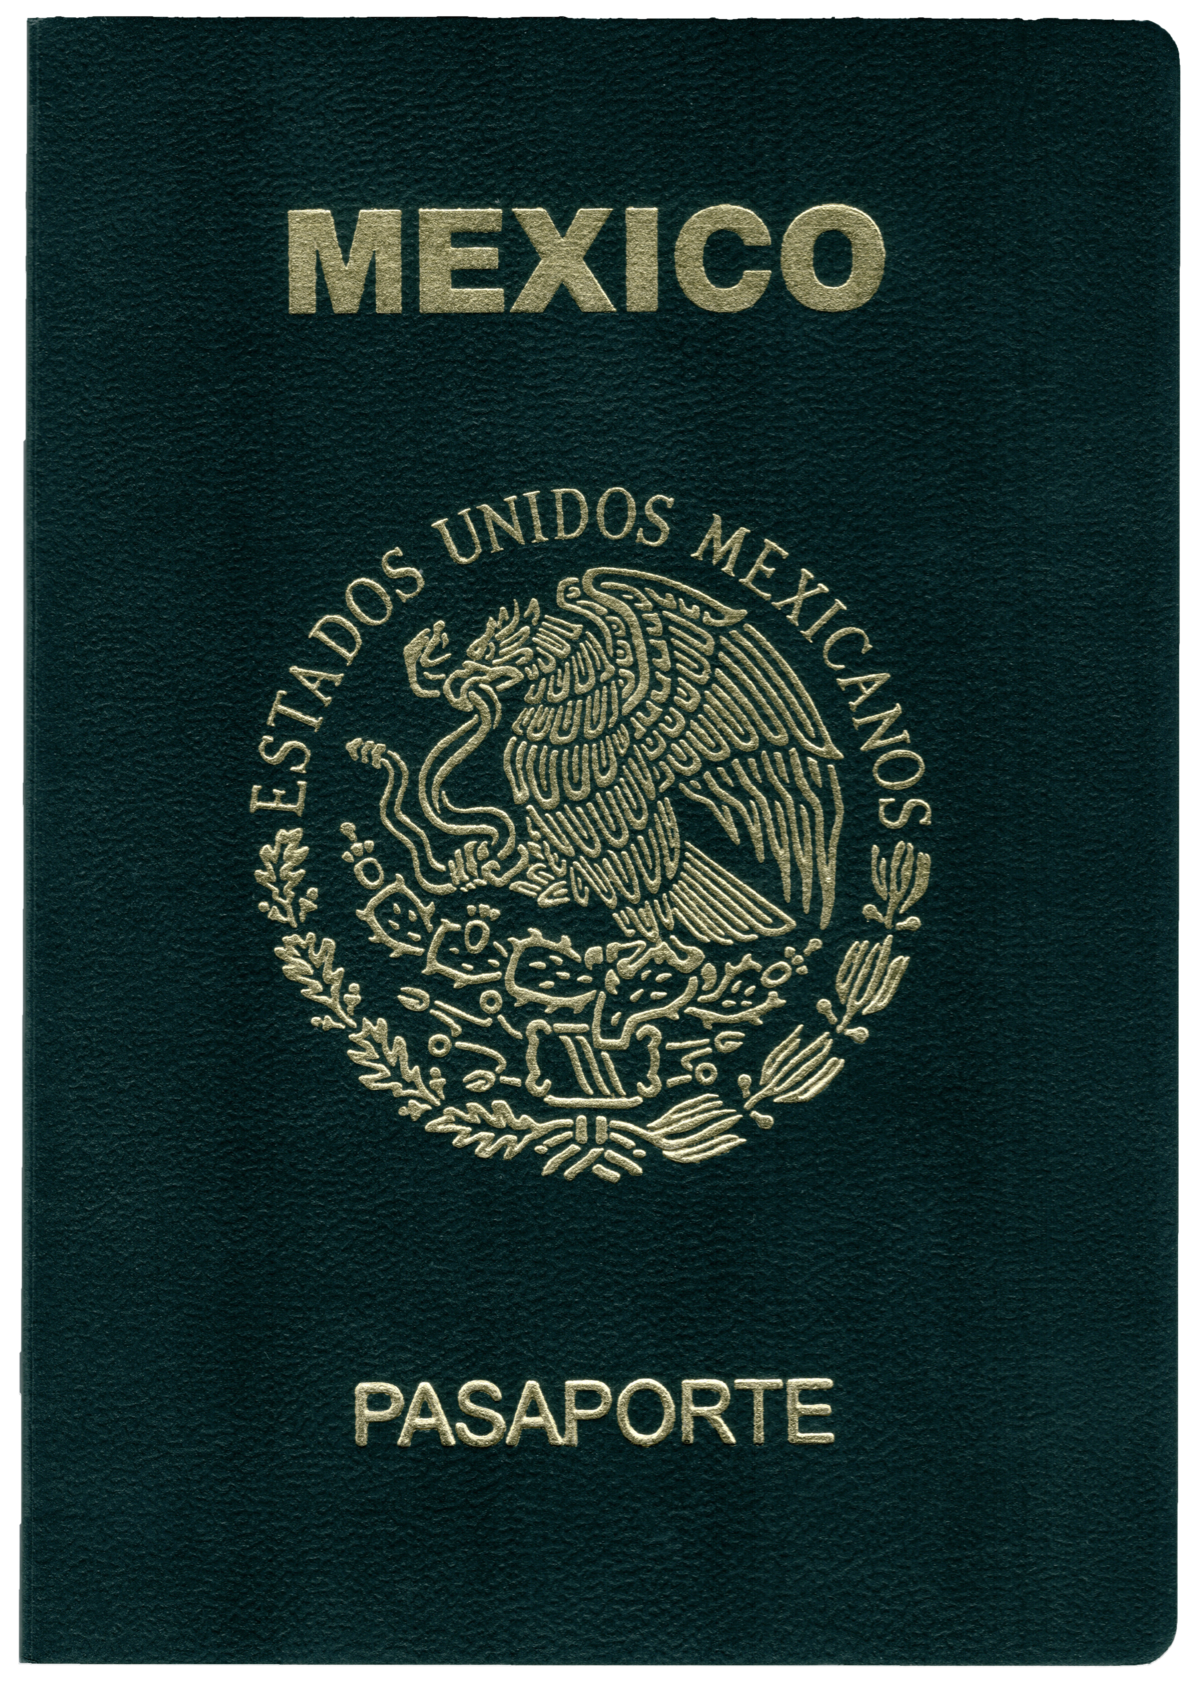 Mexican passport - Wikipedia